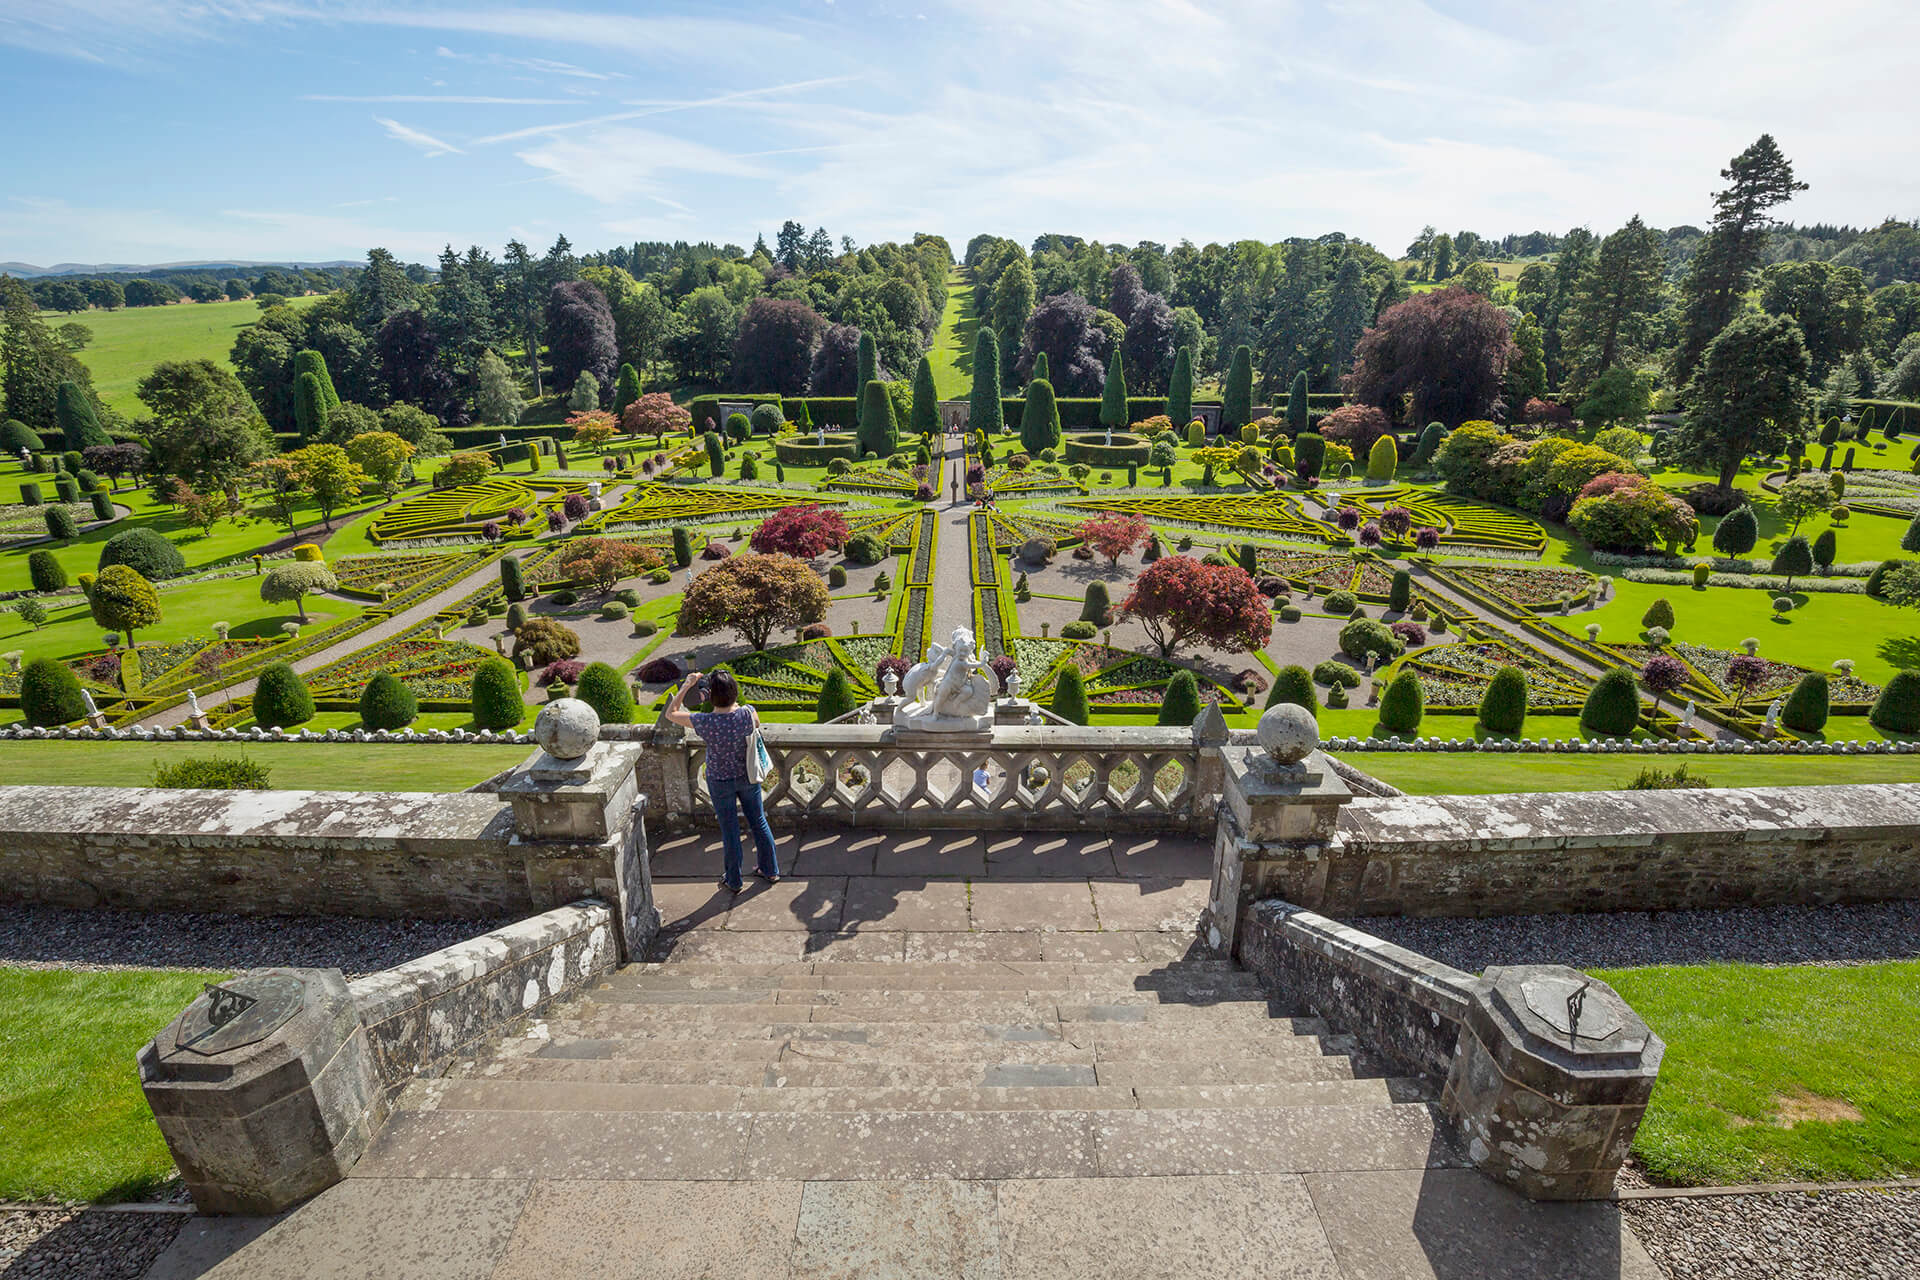 The Castle Gardens at Drummond Castle